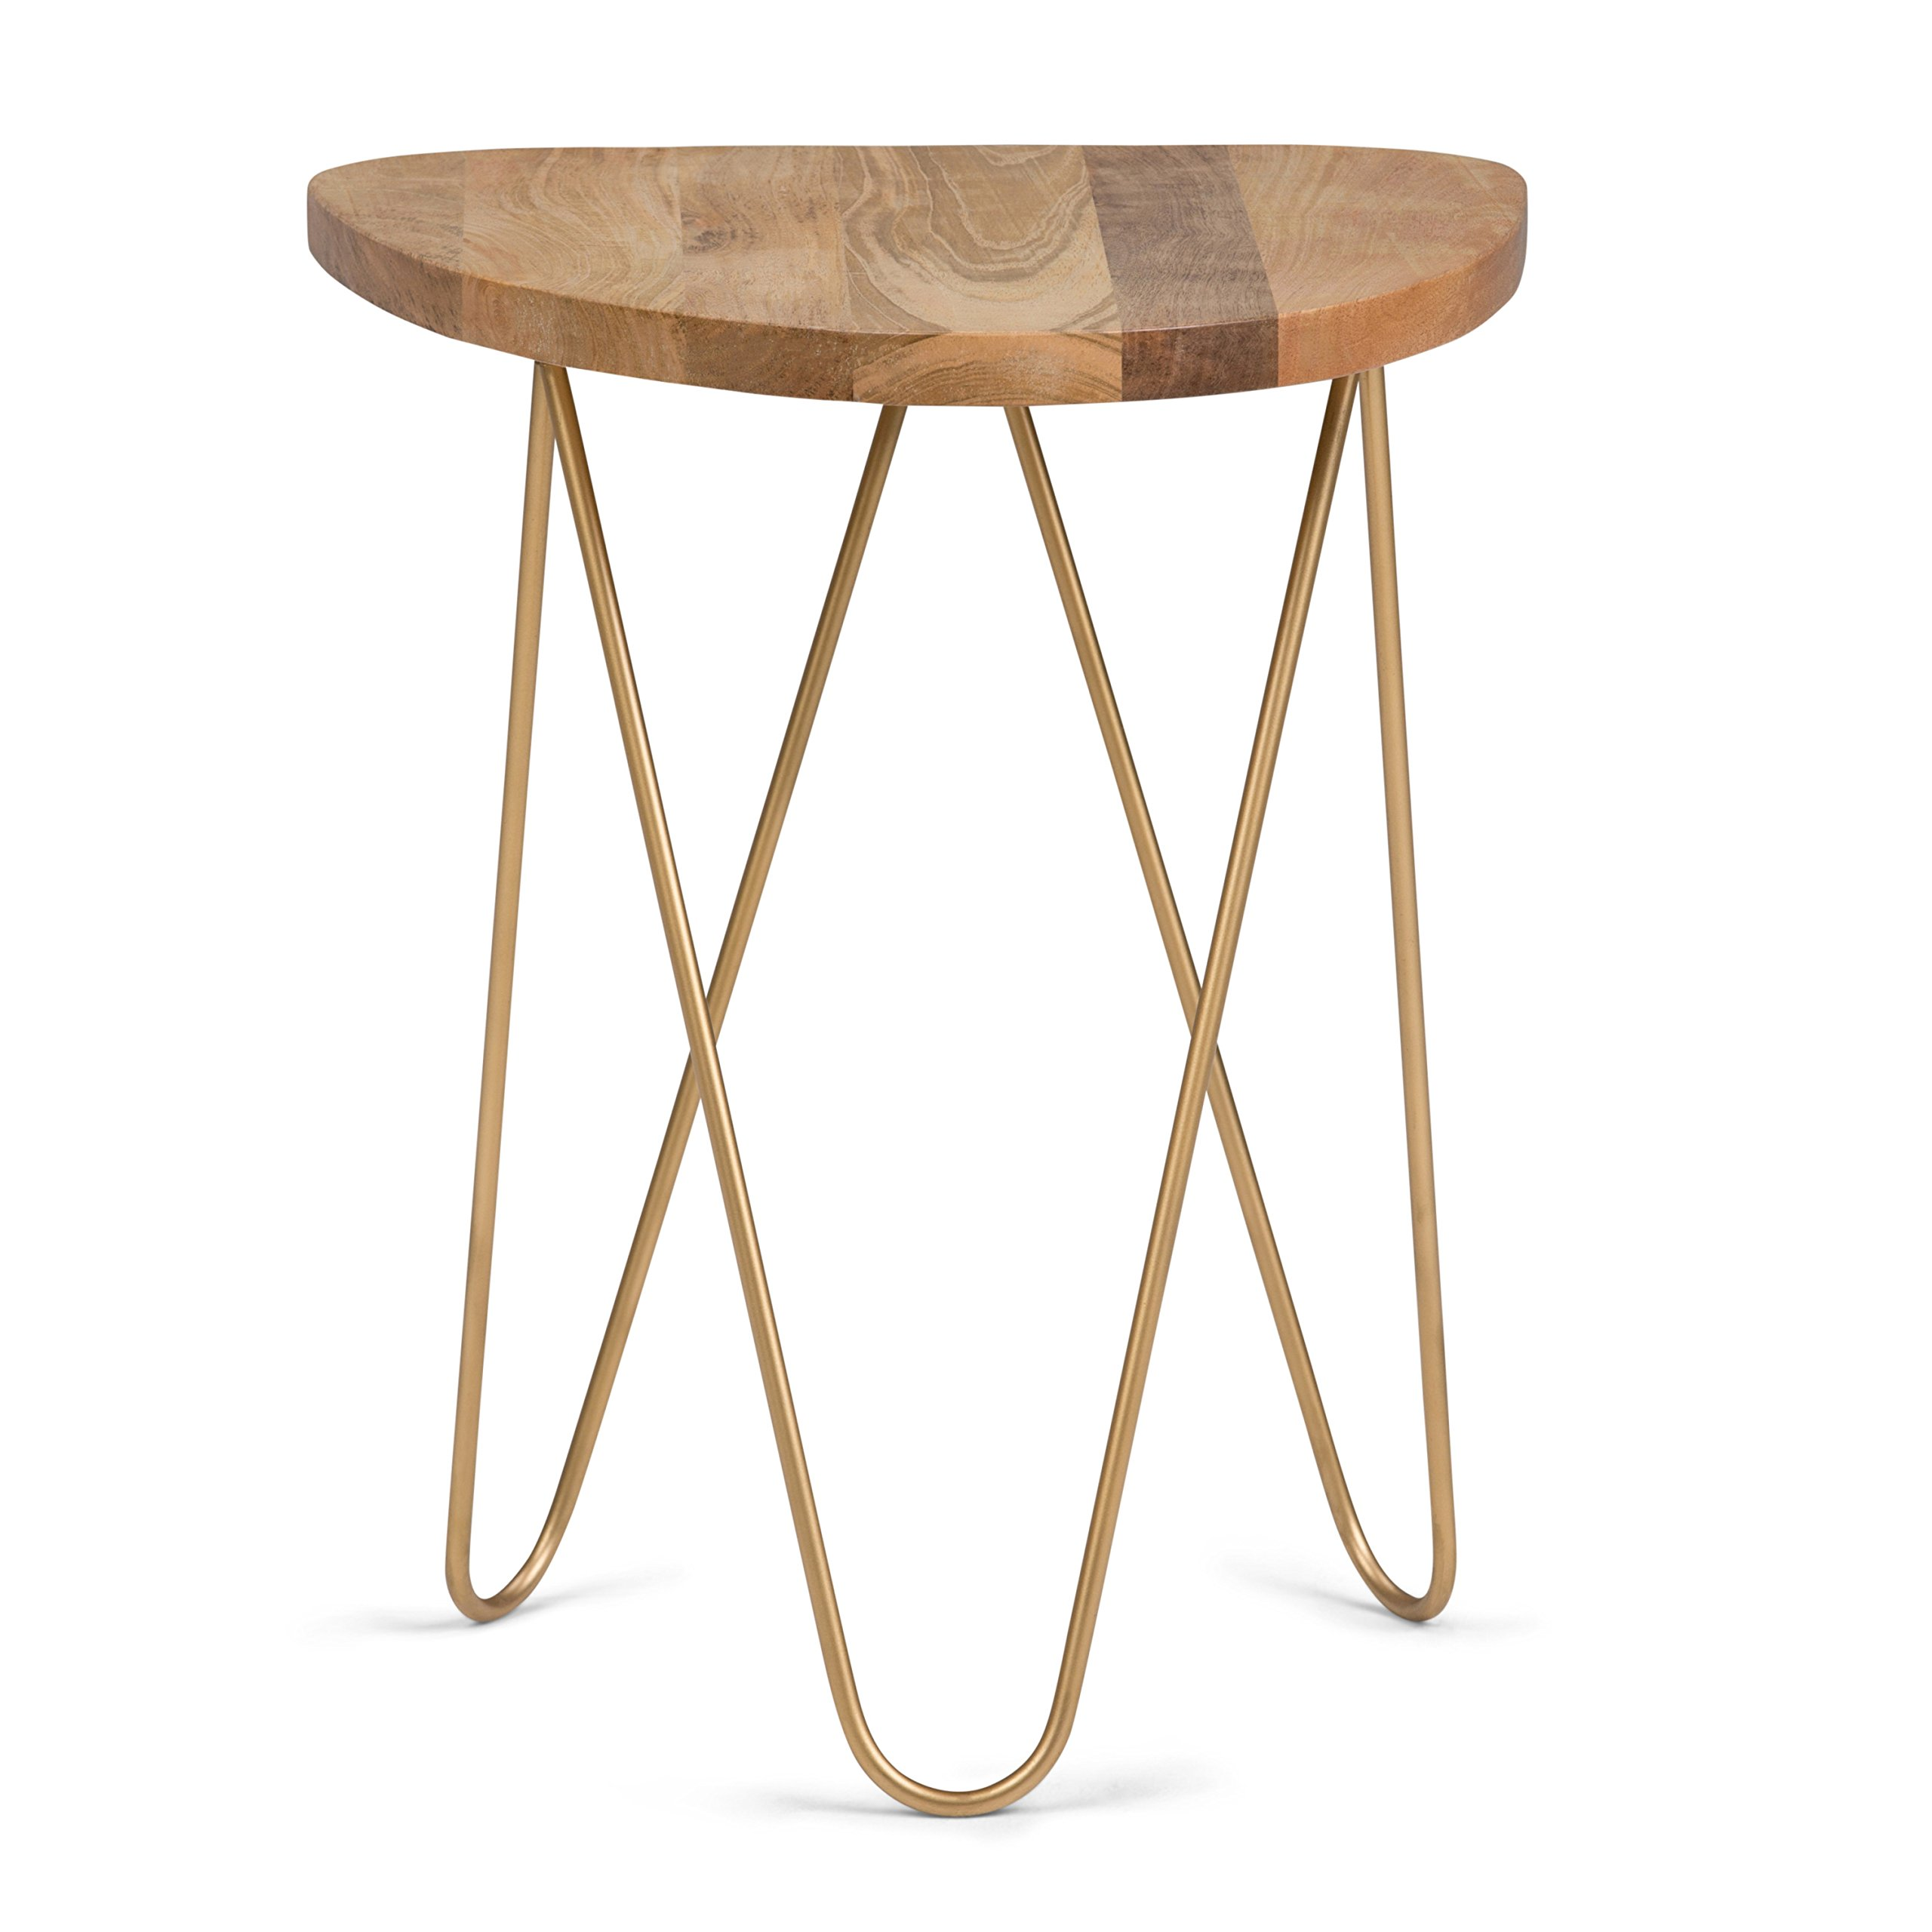 Simpli Home AXCMTBL-17 Patrice Mid Century Modern 18 inch Wide Metal and Wood Accent Side Table in Natural, Gold by Simpli Home